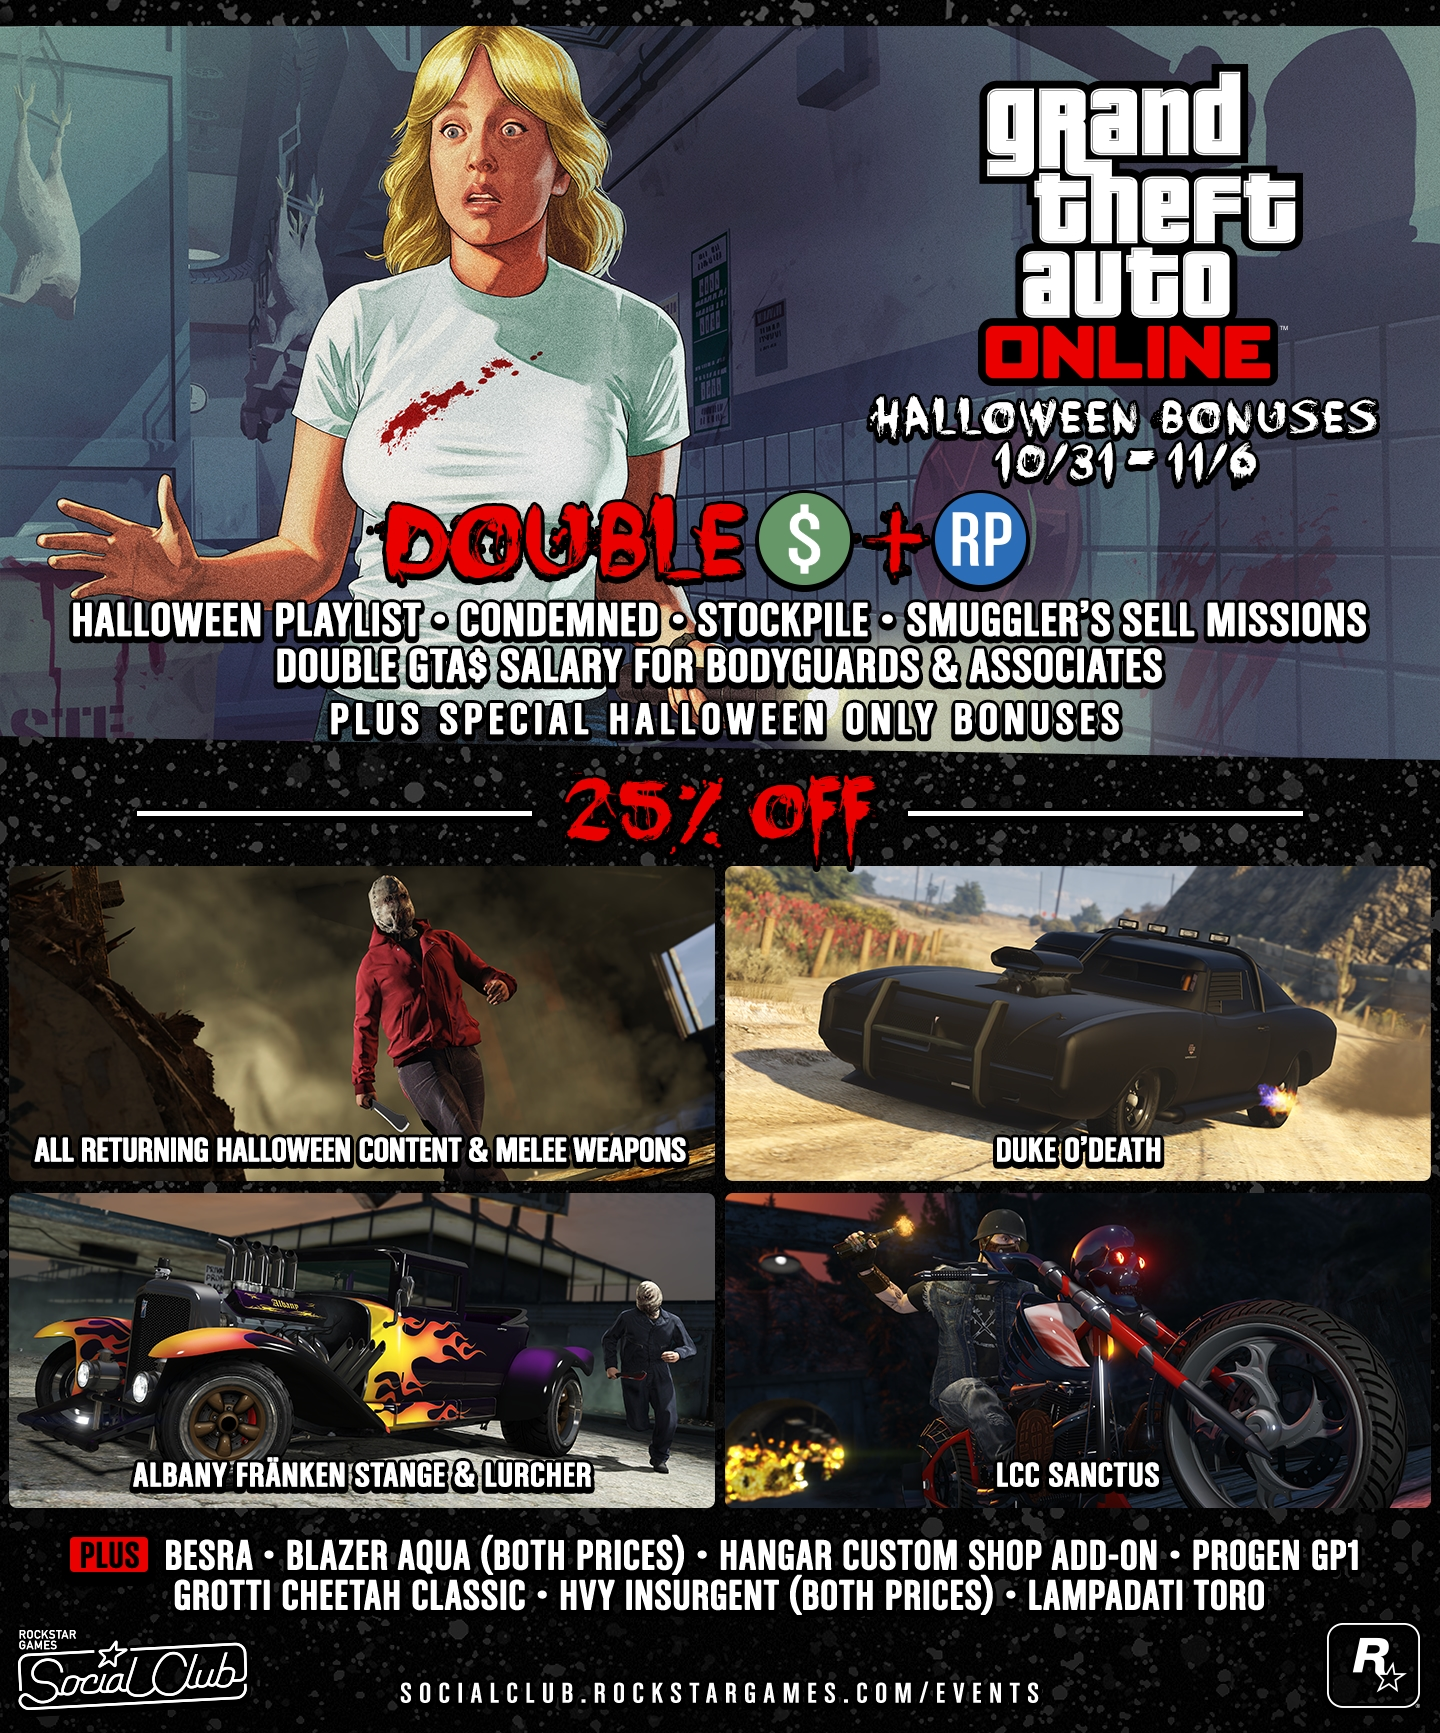 halloween in gta online double gta bonuses new western seabreeze plane and more